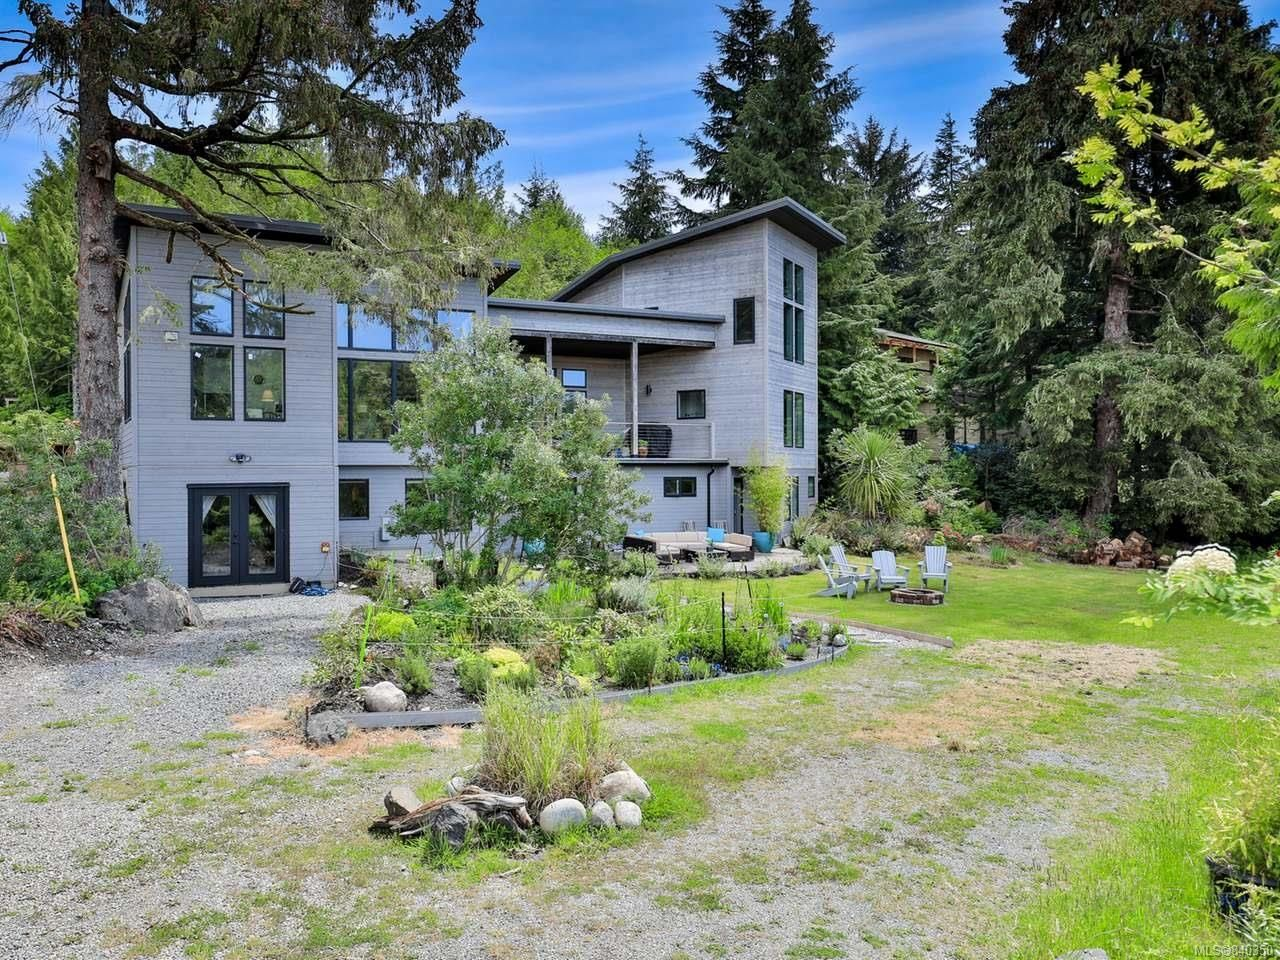 Photo 55: Photos: 1068 Helen Rd in UCLUELET: PA Ucluelet House for sale (Port Alberni)  : MLS®# 840350